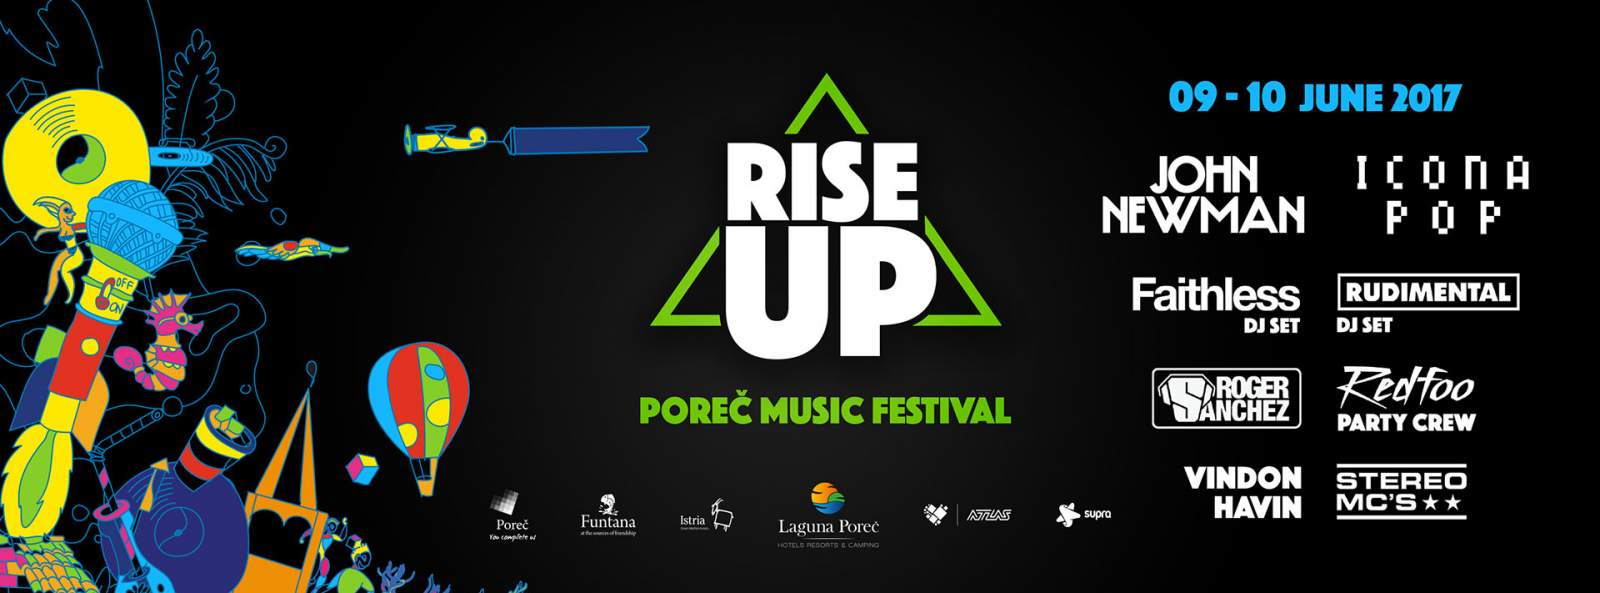 Rise Up Poreč Music Festival